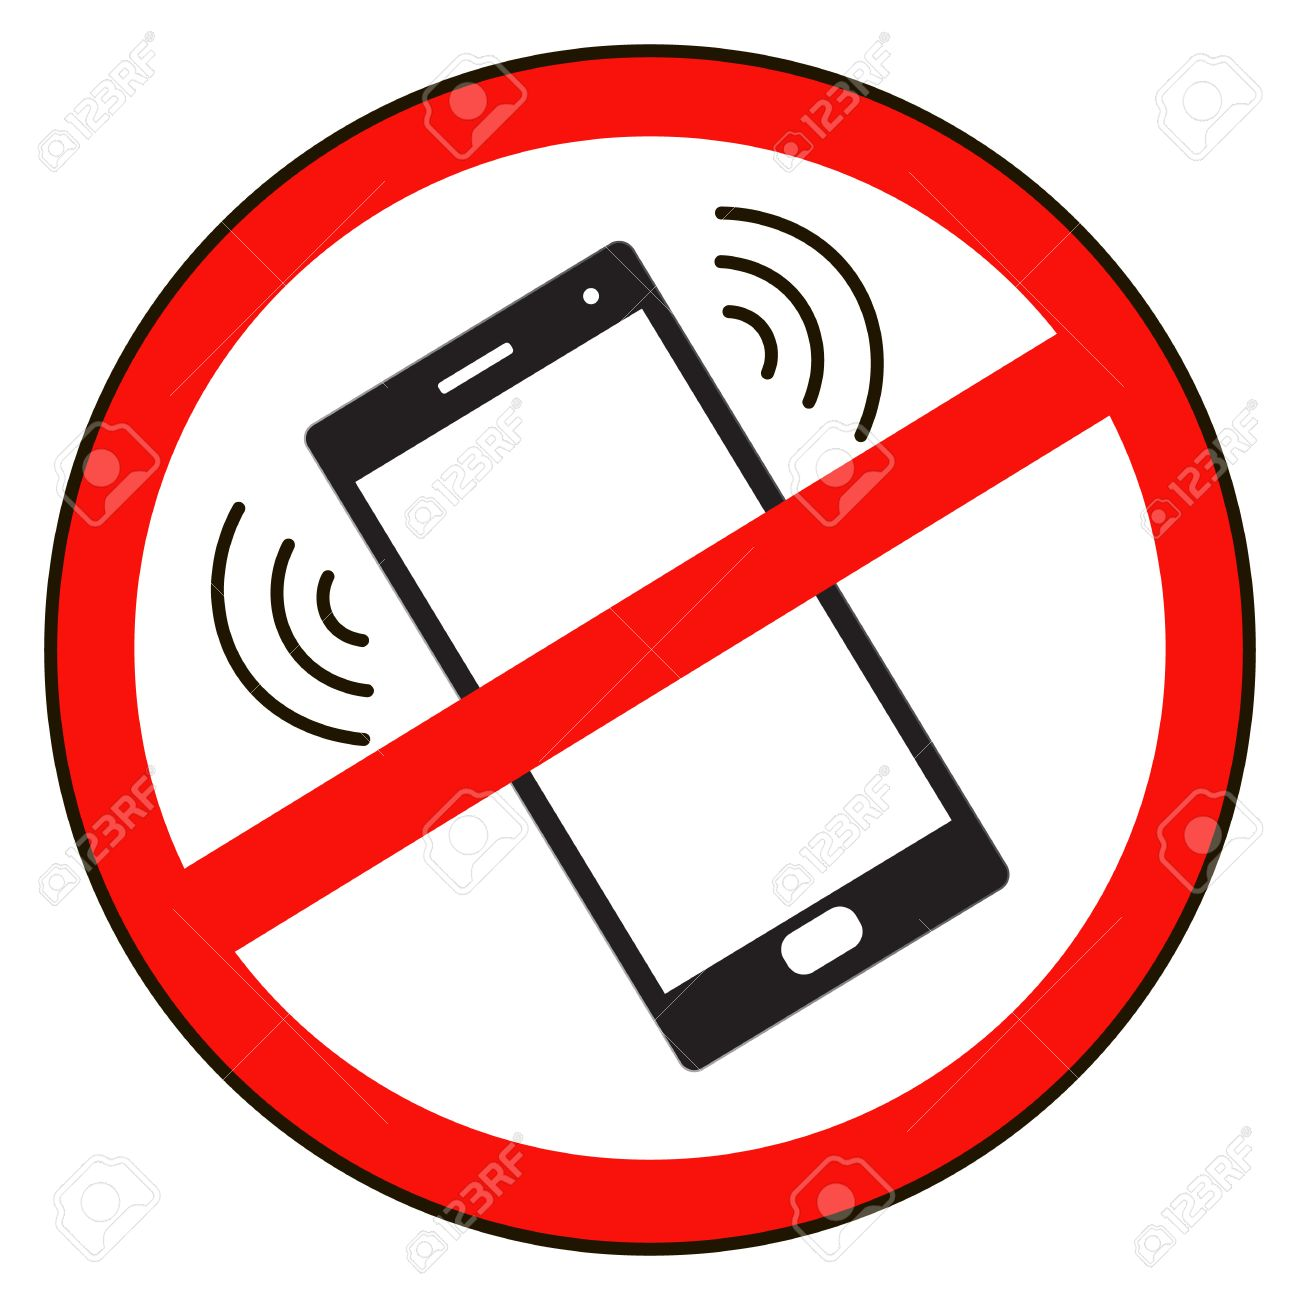 Mobile Phone prohibited. No cell phone sign isolated white background.